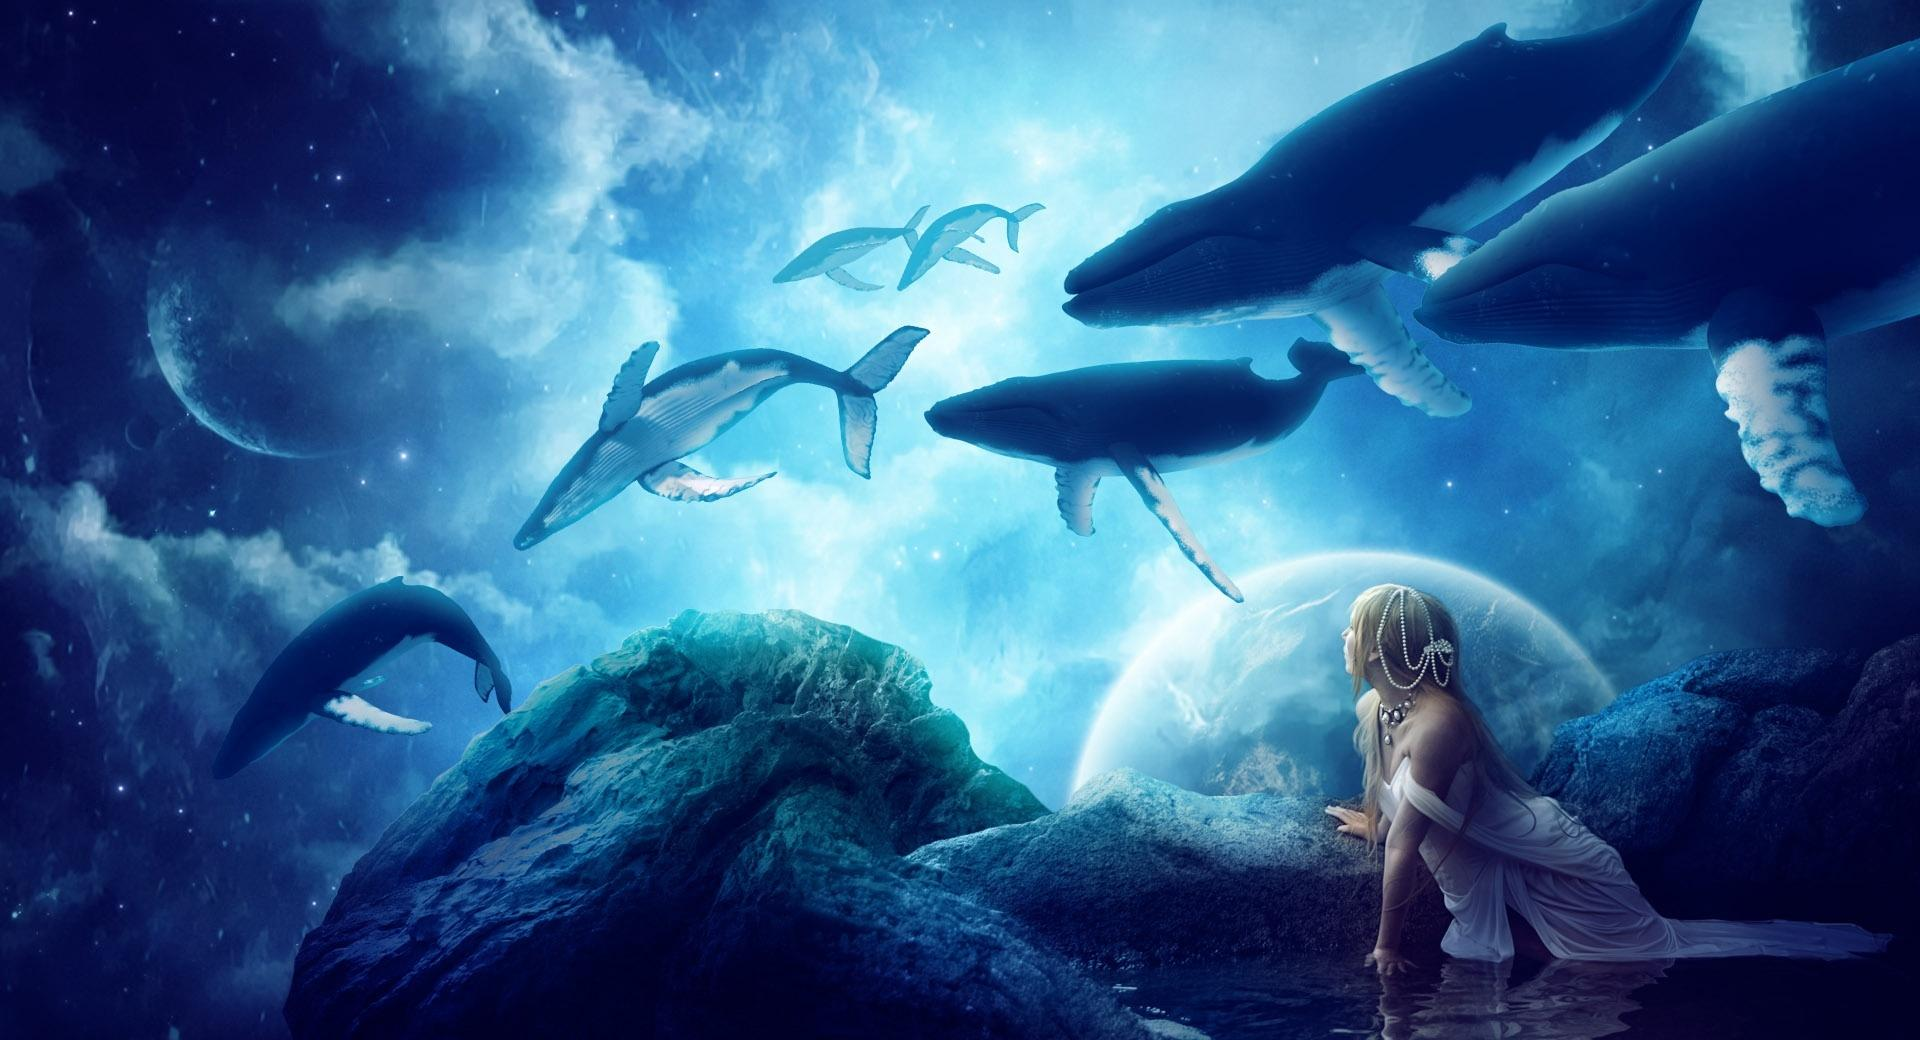 Whales Dream wallpapers HD quality